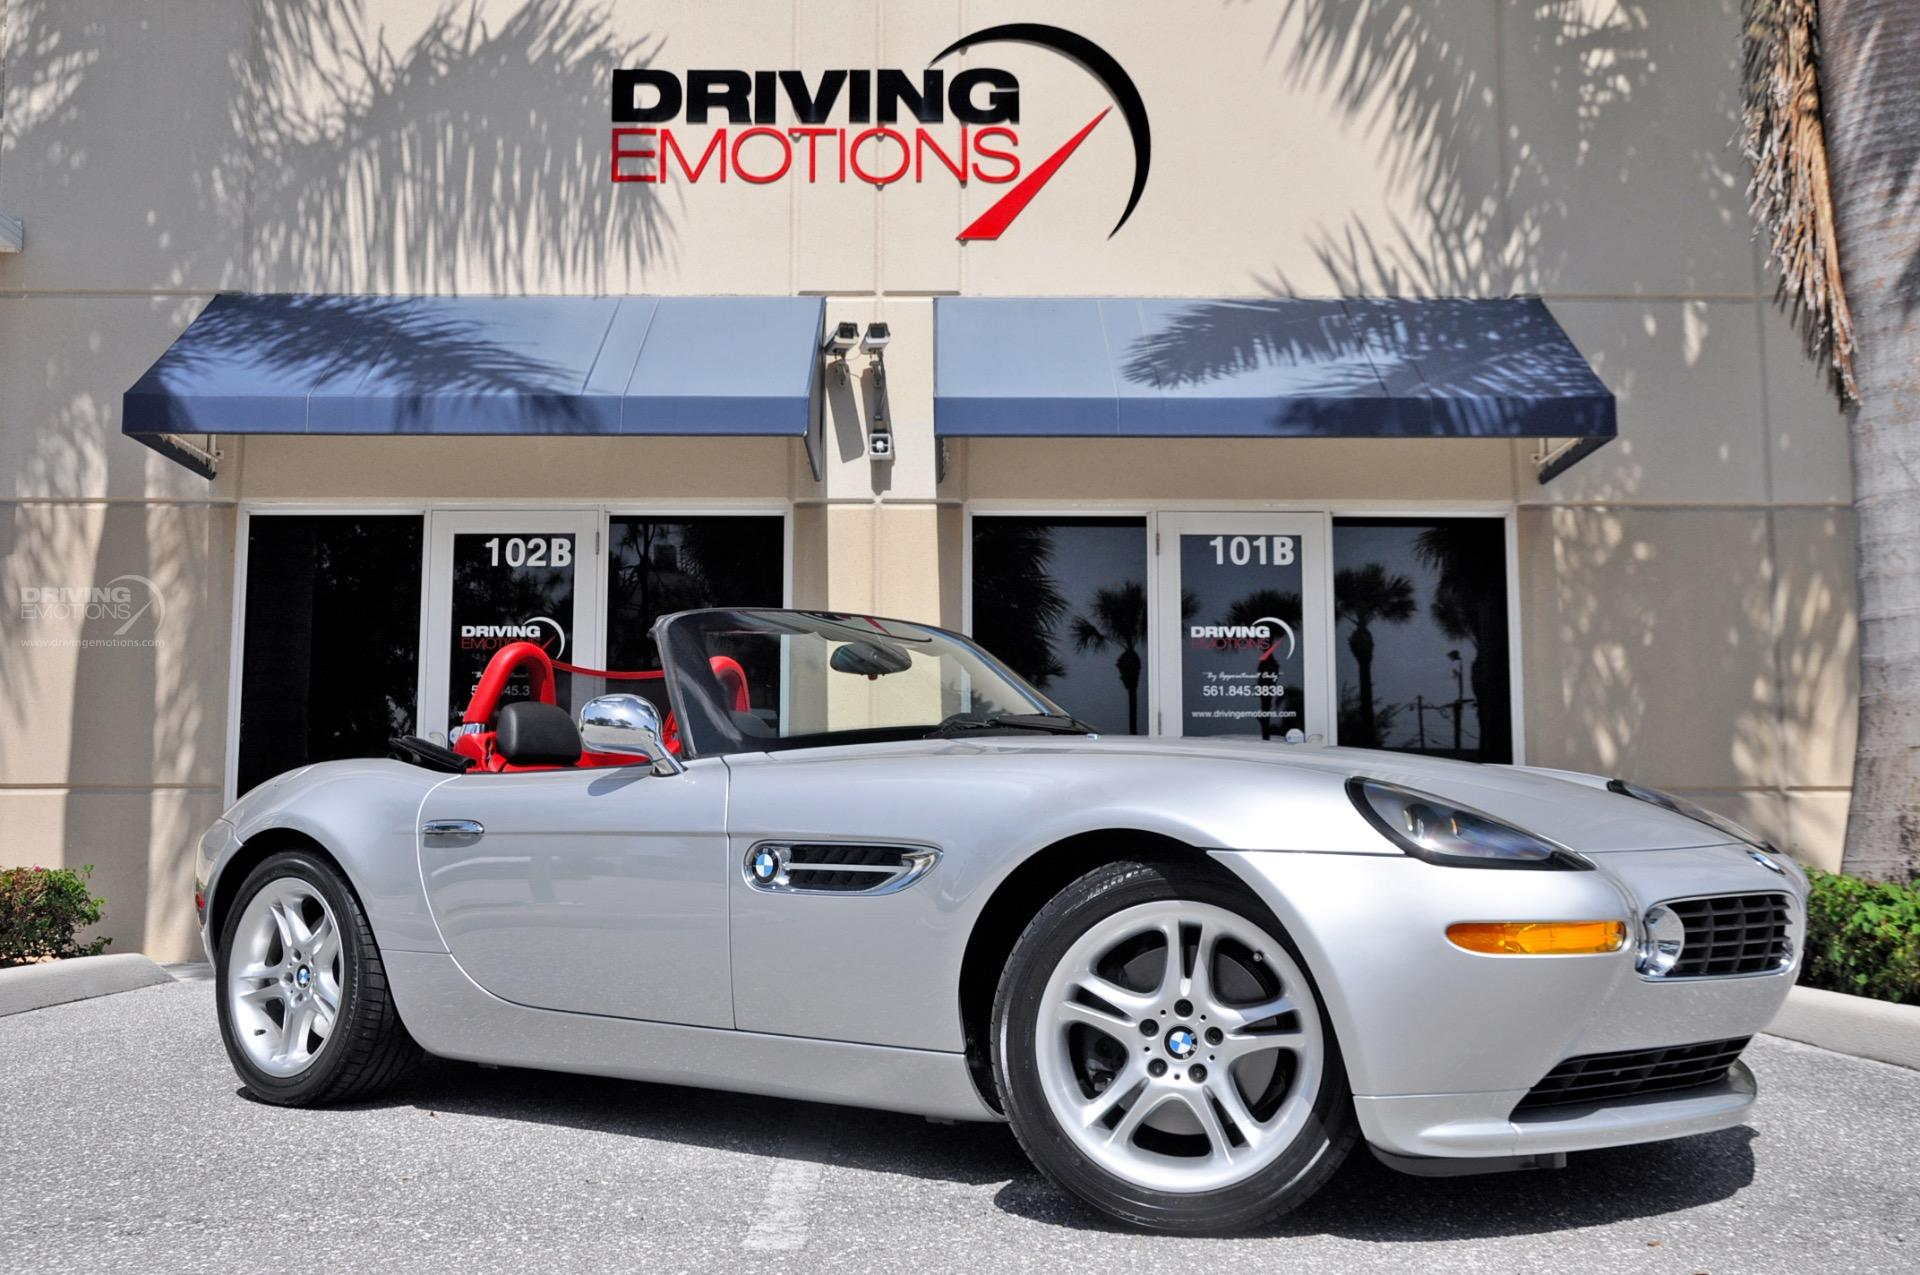 2002 bmw z8 roadster stock 5891 for sale near lake park fl fl rh drivingemotions com BMW Z4 BMW Z4